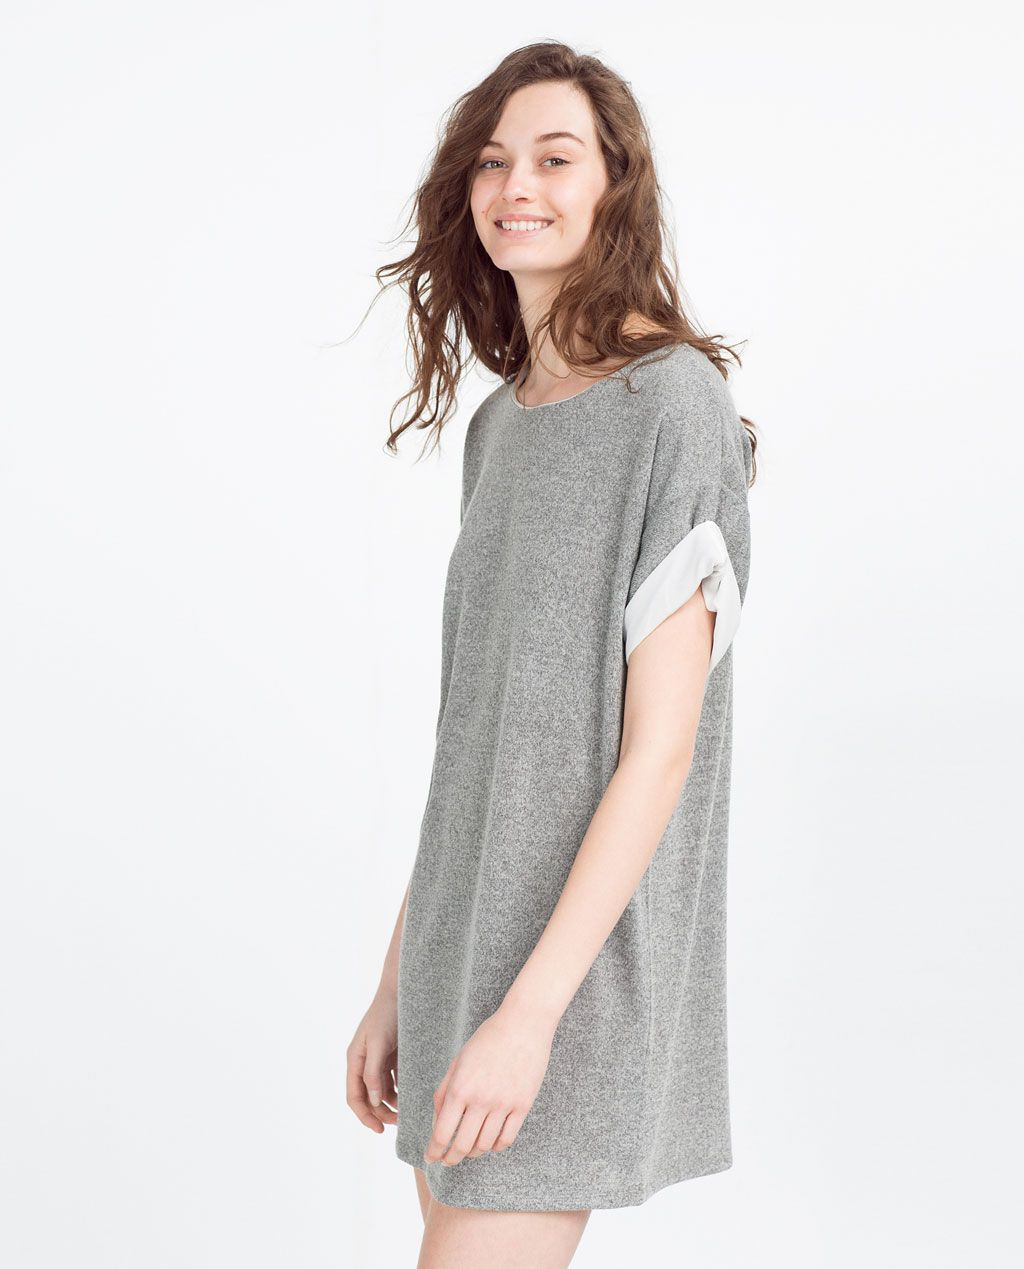 Of From Shirt Form Dress T ZaraSixth Image 2 OutfitStyle LSjVUzqMpG